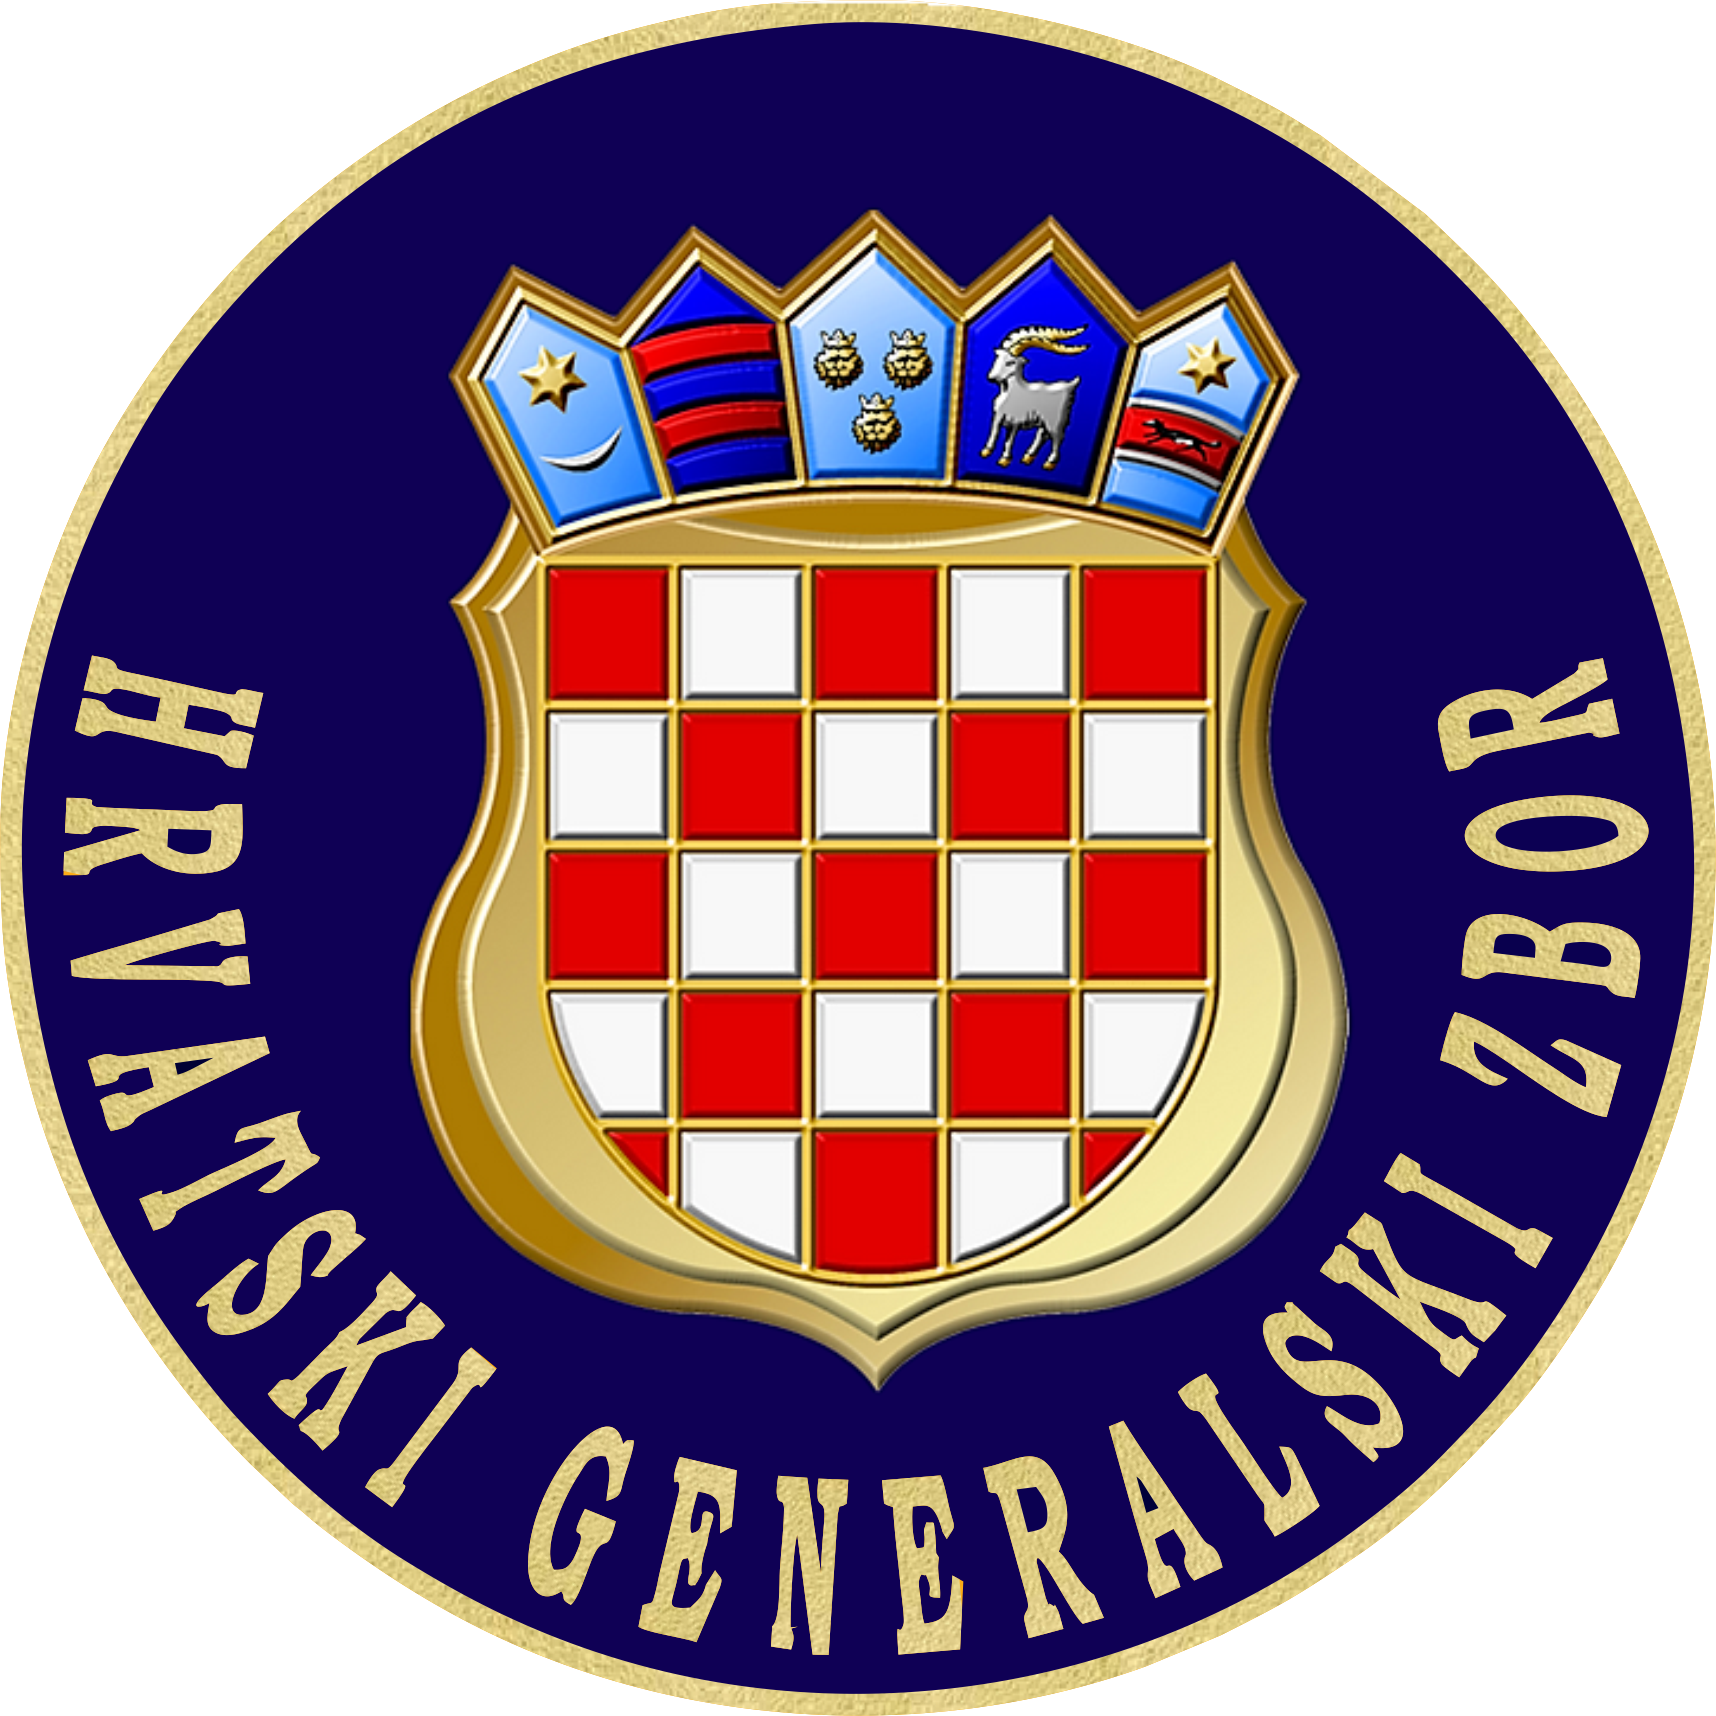 Hrvatski Generalni Zbor CROATIAN GENERALS ASSOCIATION